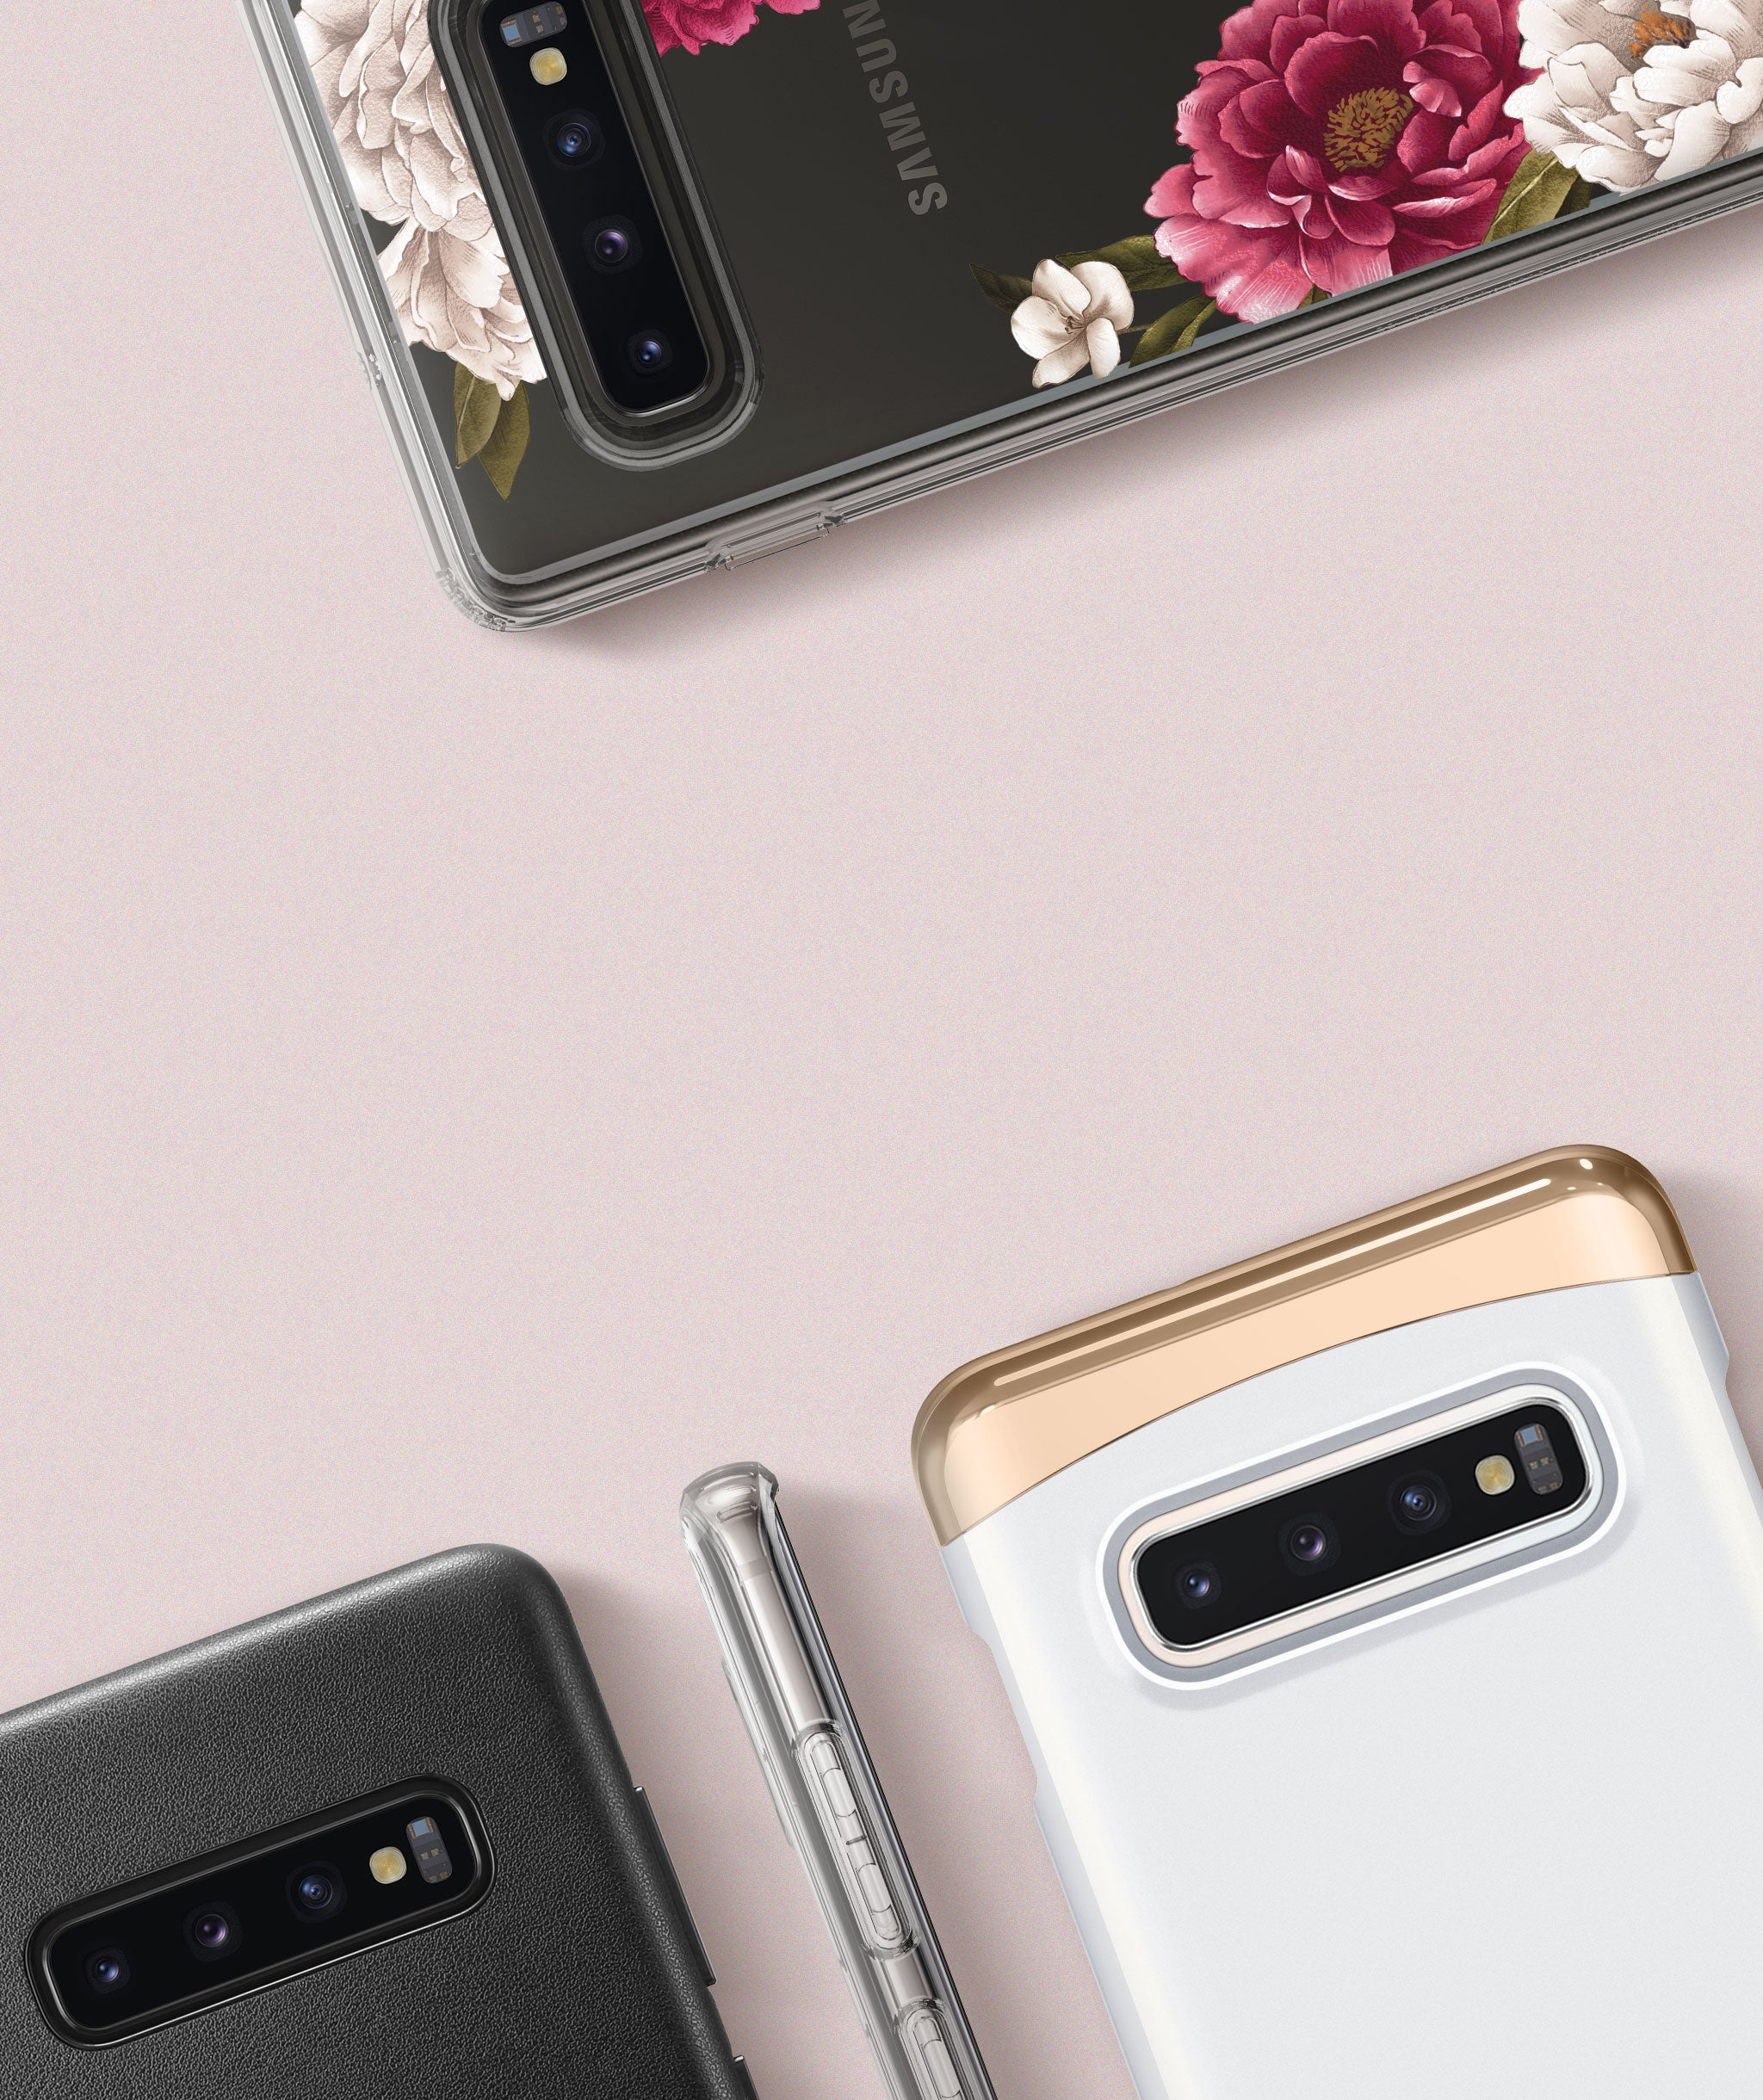 Galaxy S10 Plus Case Collection